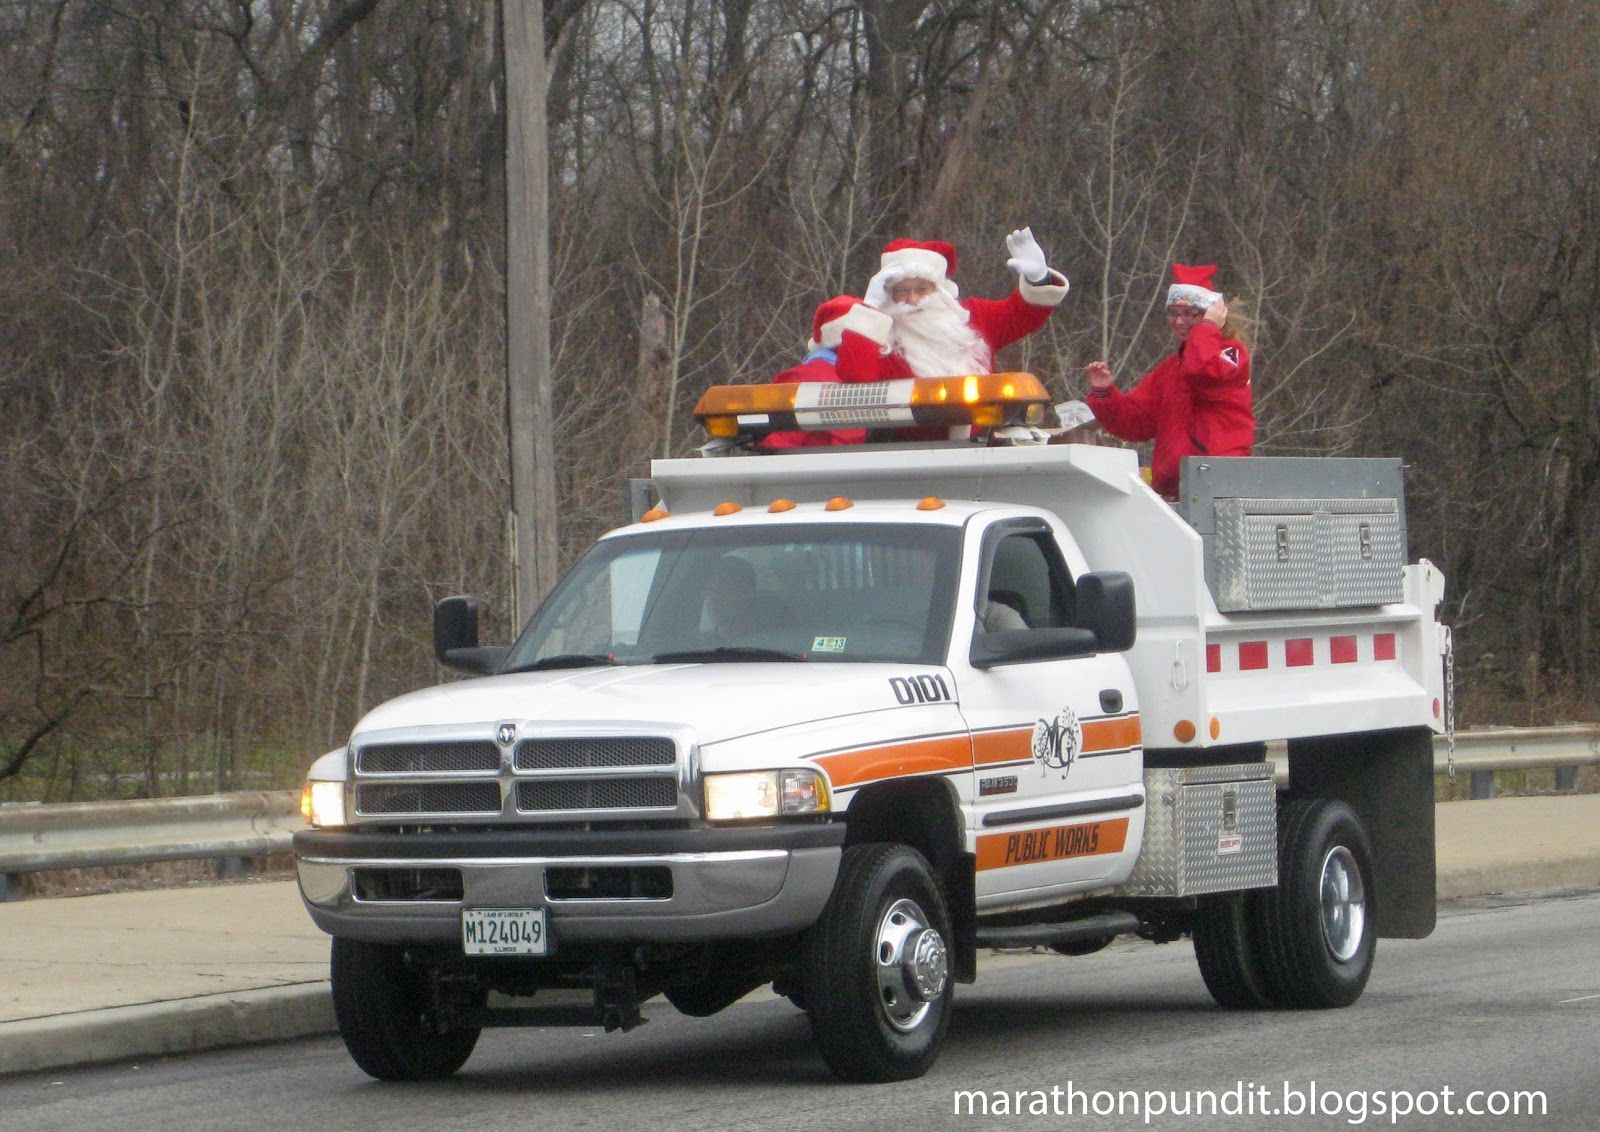 Santa Claus returns to Morton Grove #mortongrove